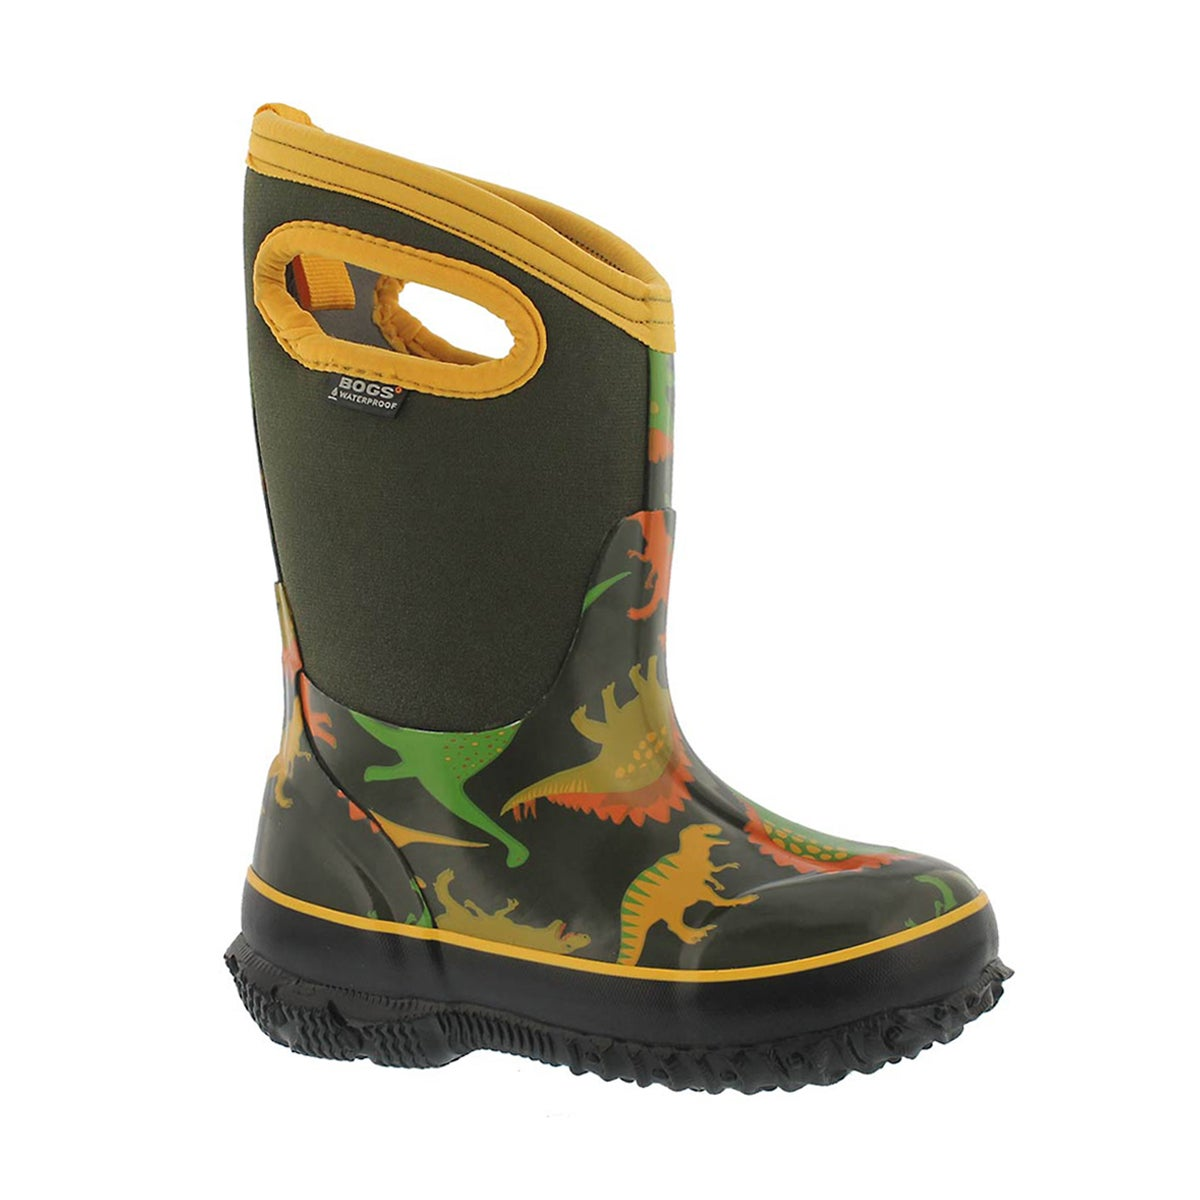 Bys Classic Dino moss mlti wtpf boot